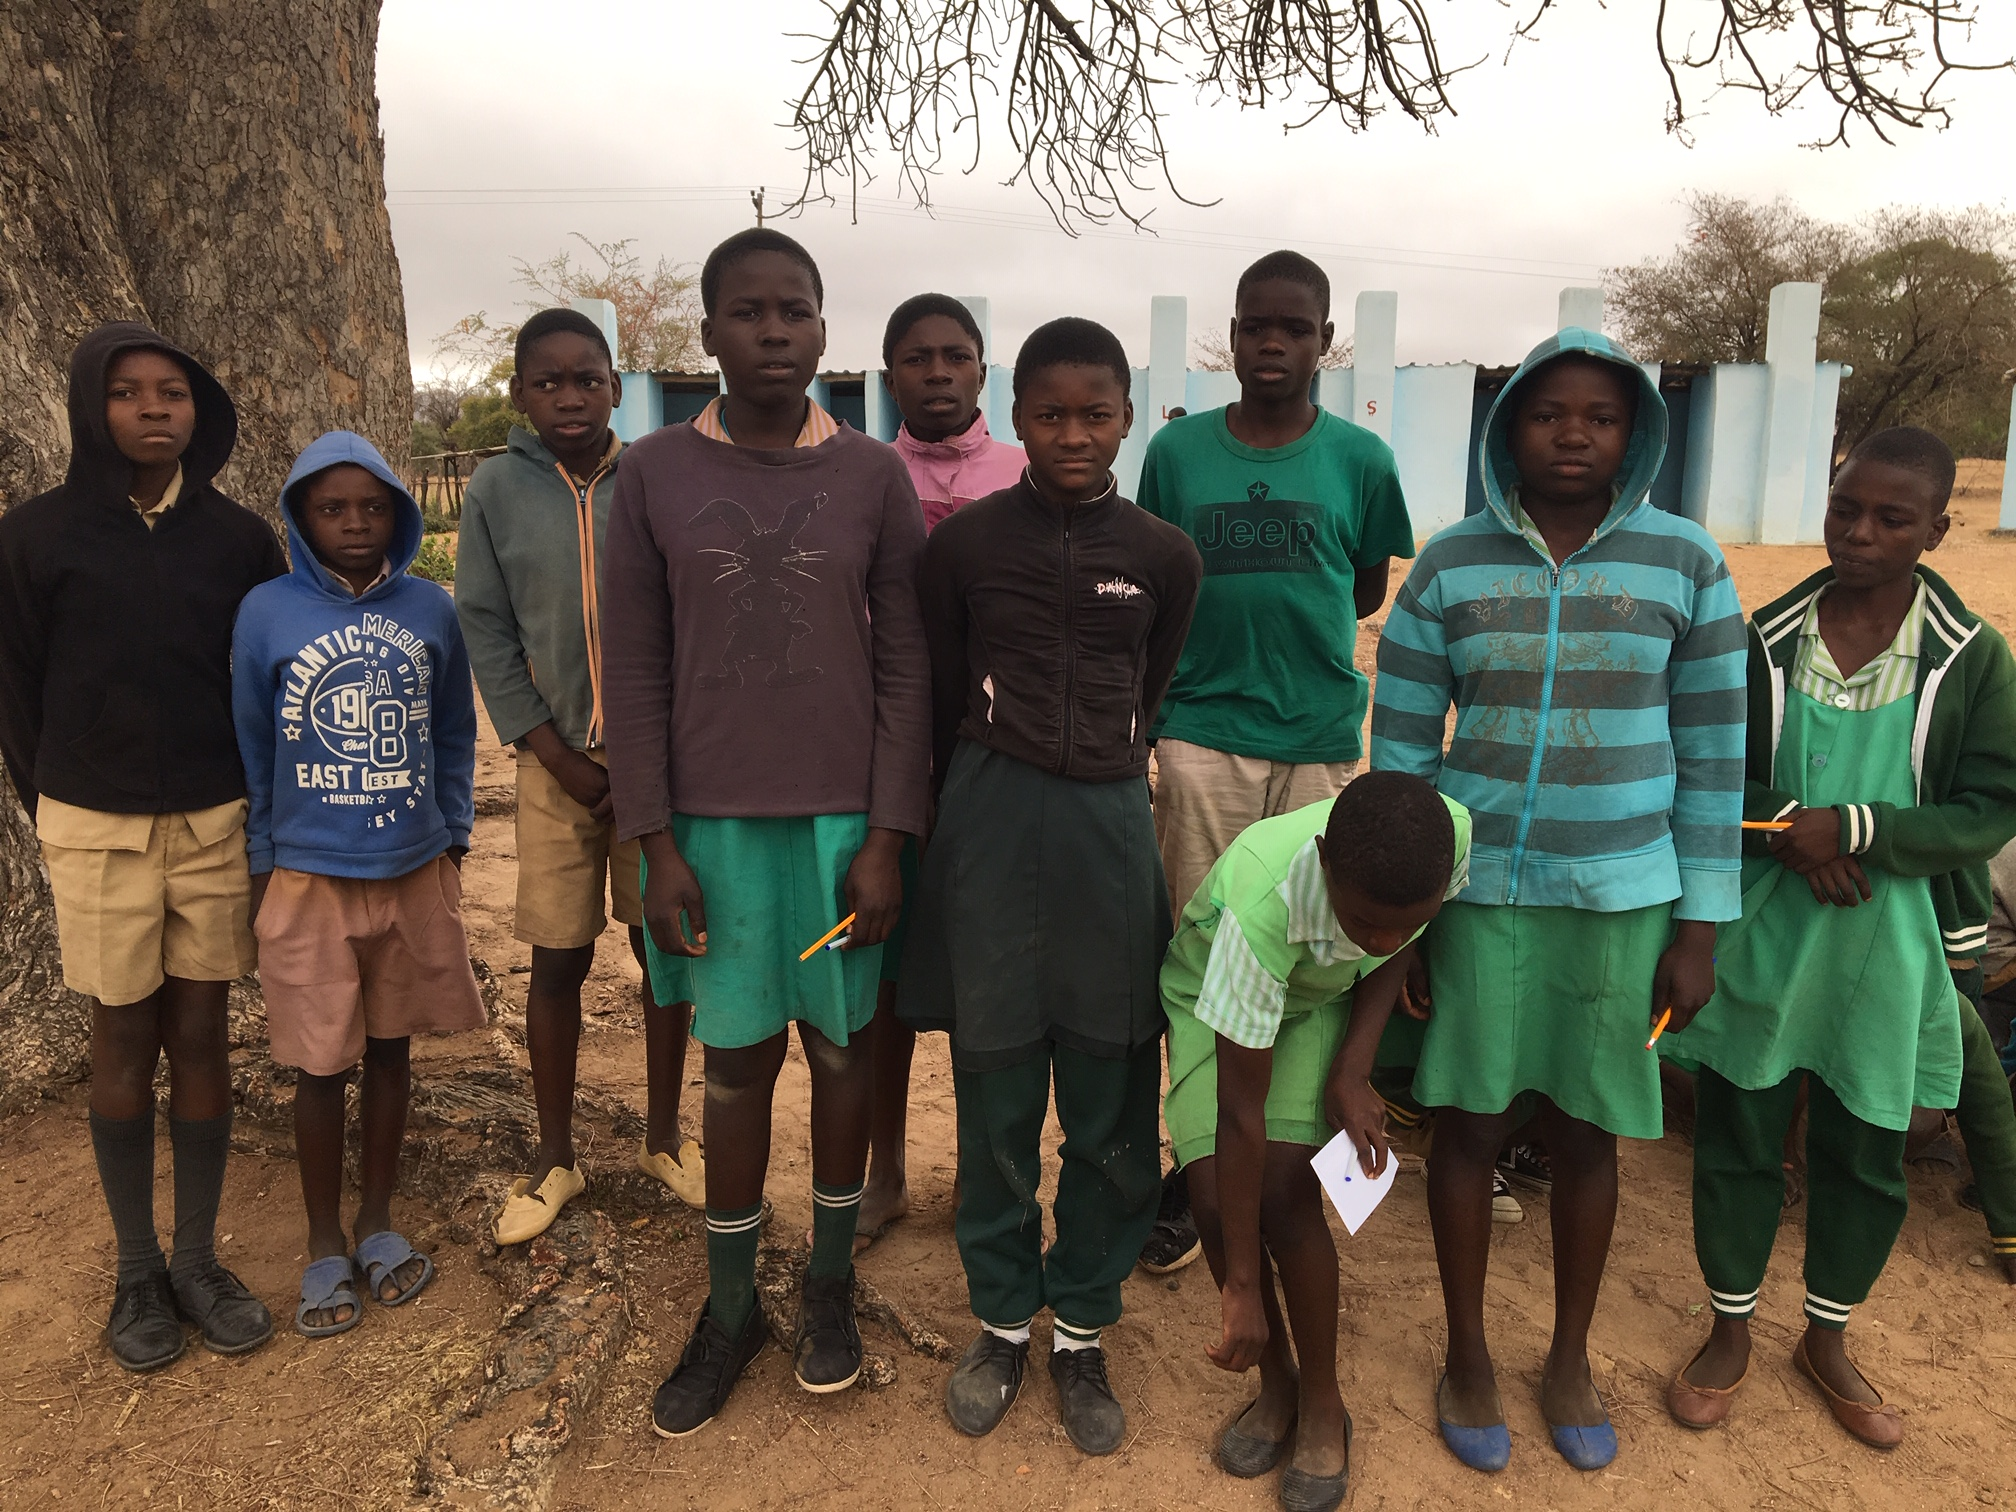 Musvovi Grade Seven students: they had just finished a FOUR HOUR national exam. The results of these tests determine their ability to continue on to secondary school. Today was the Math exam and they all said the math was easy!